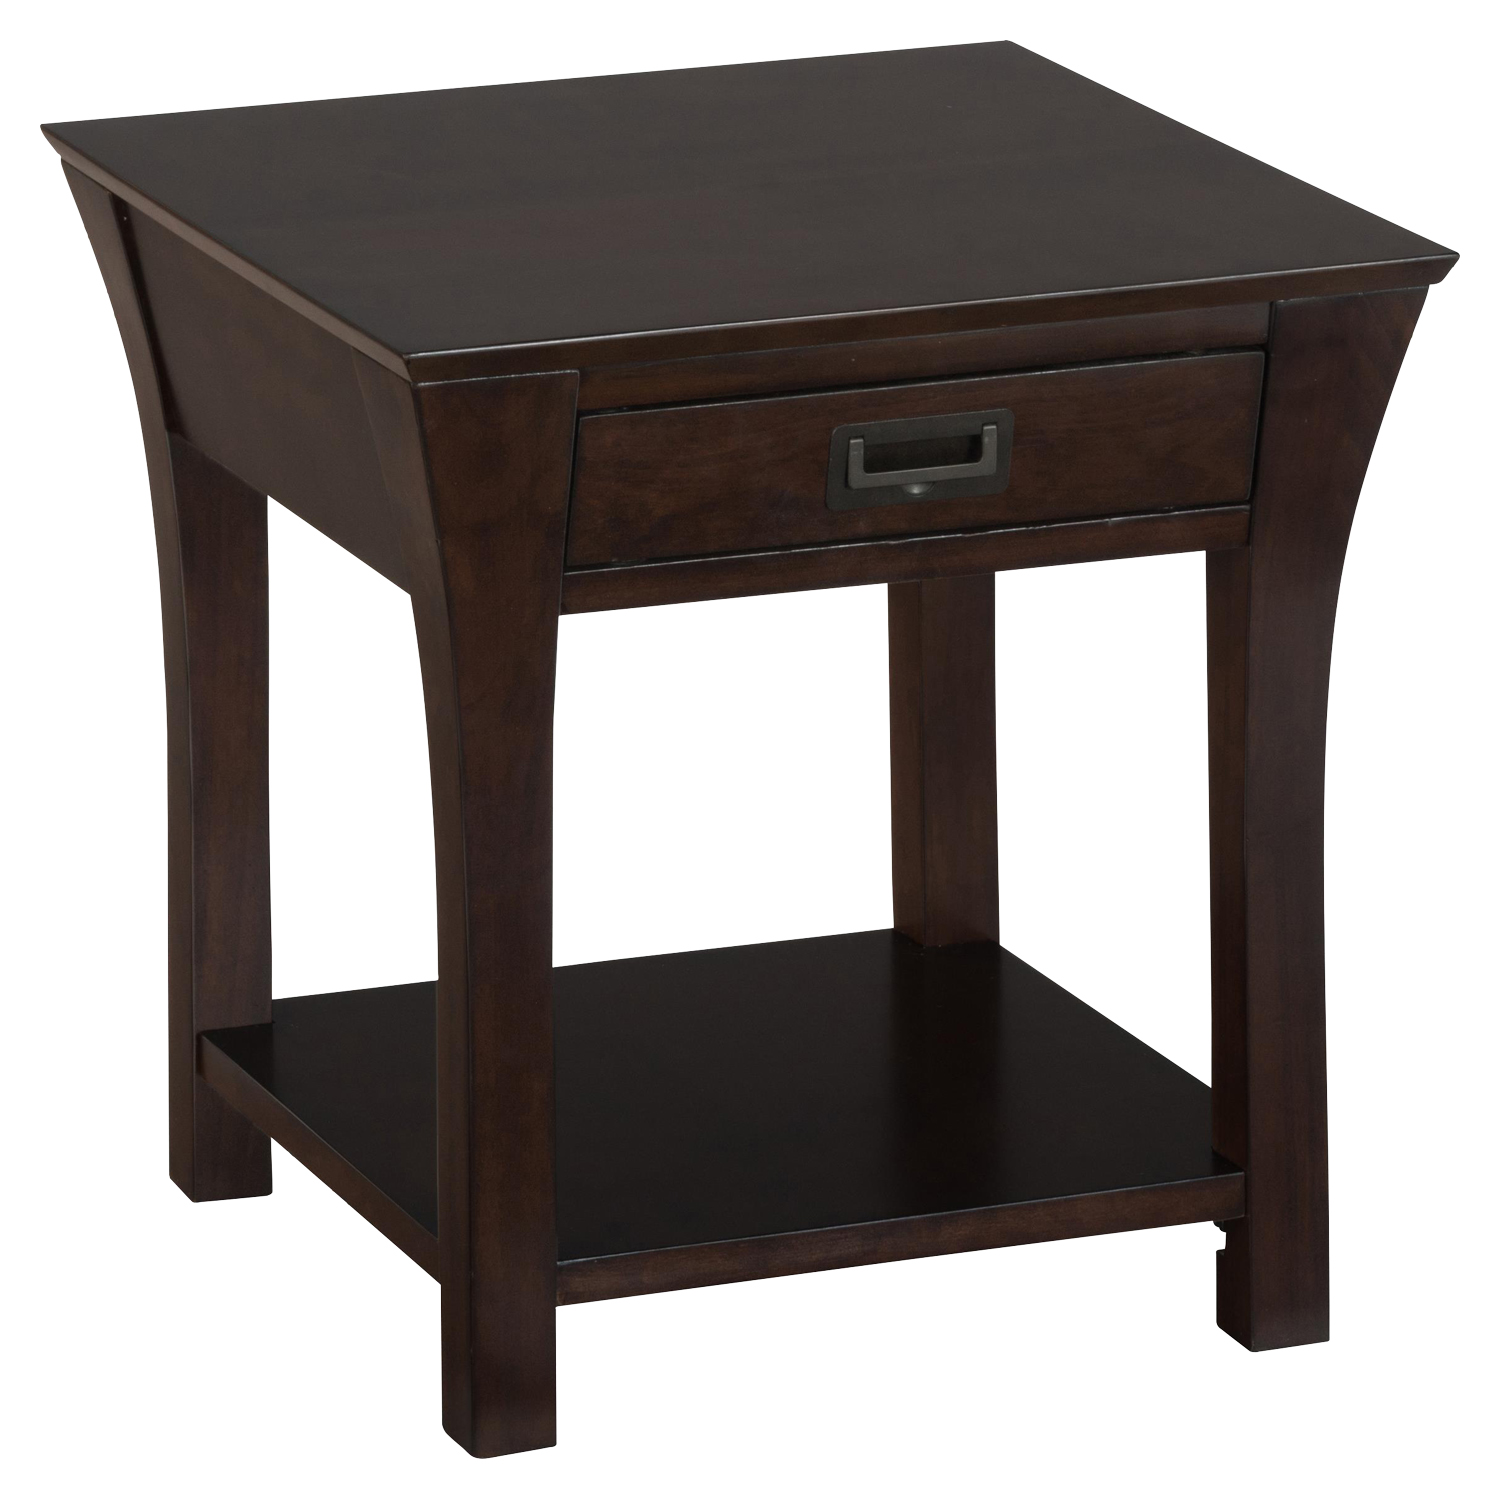 Artisan End Table - Square, 1 Drawer - JOFR-394-3